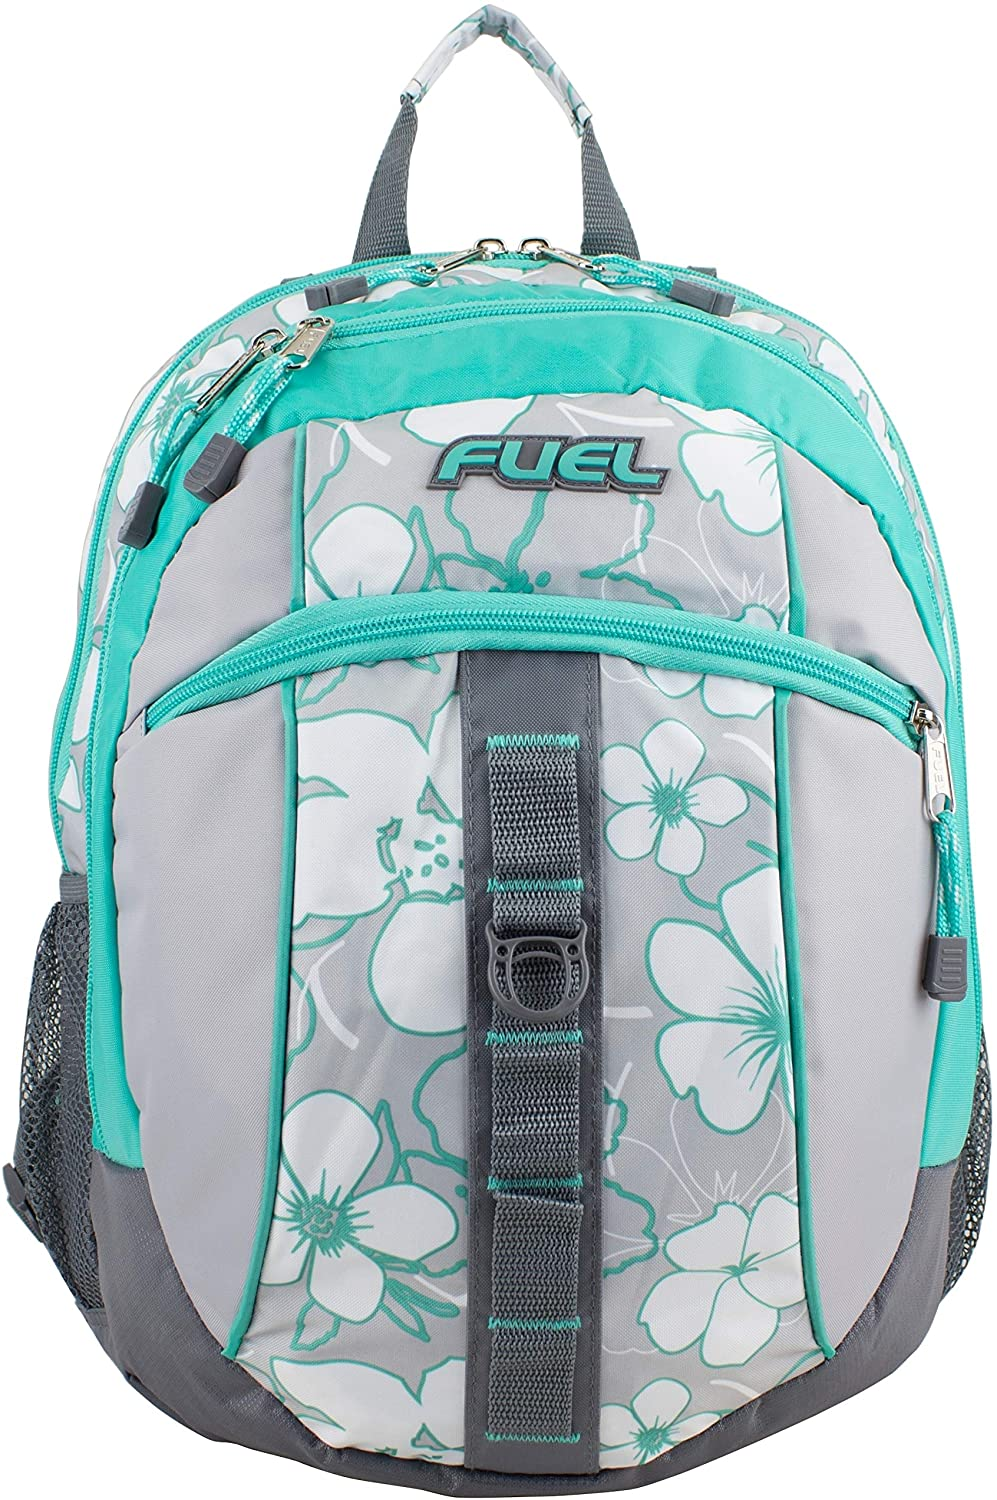 Fuel Sport Active Functional Backpack Color Two Tone Polyester Expandable Adjustable Strap